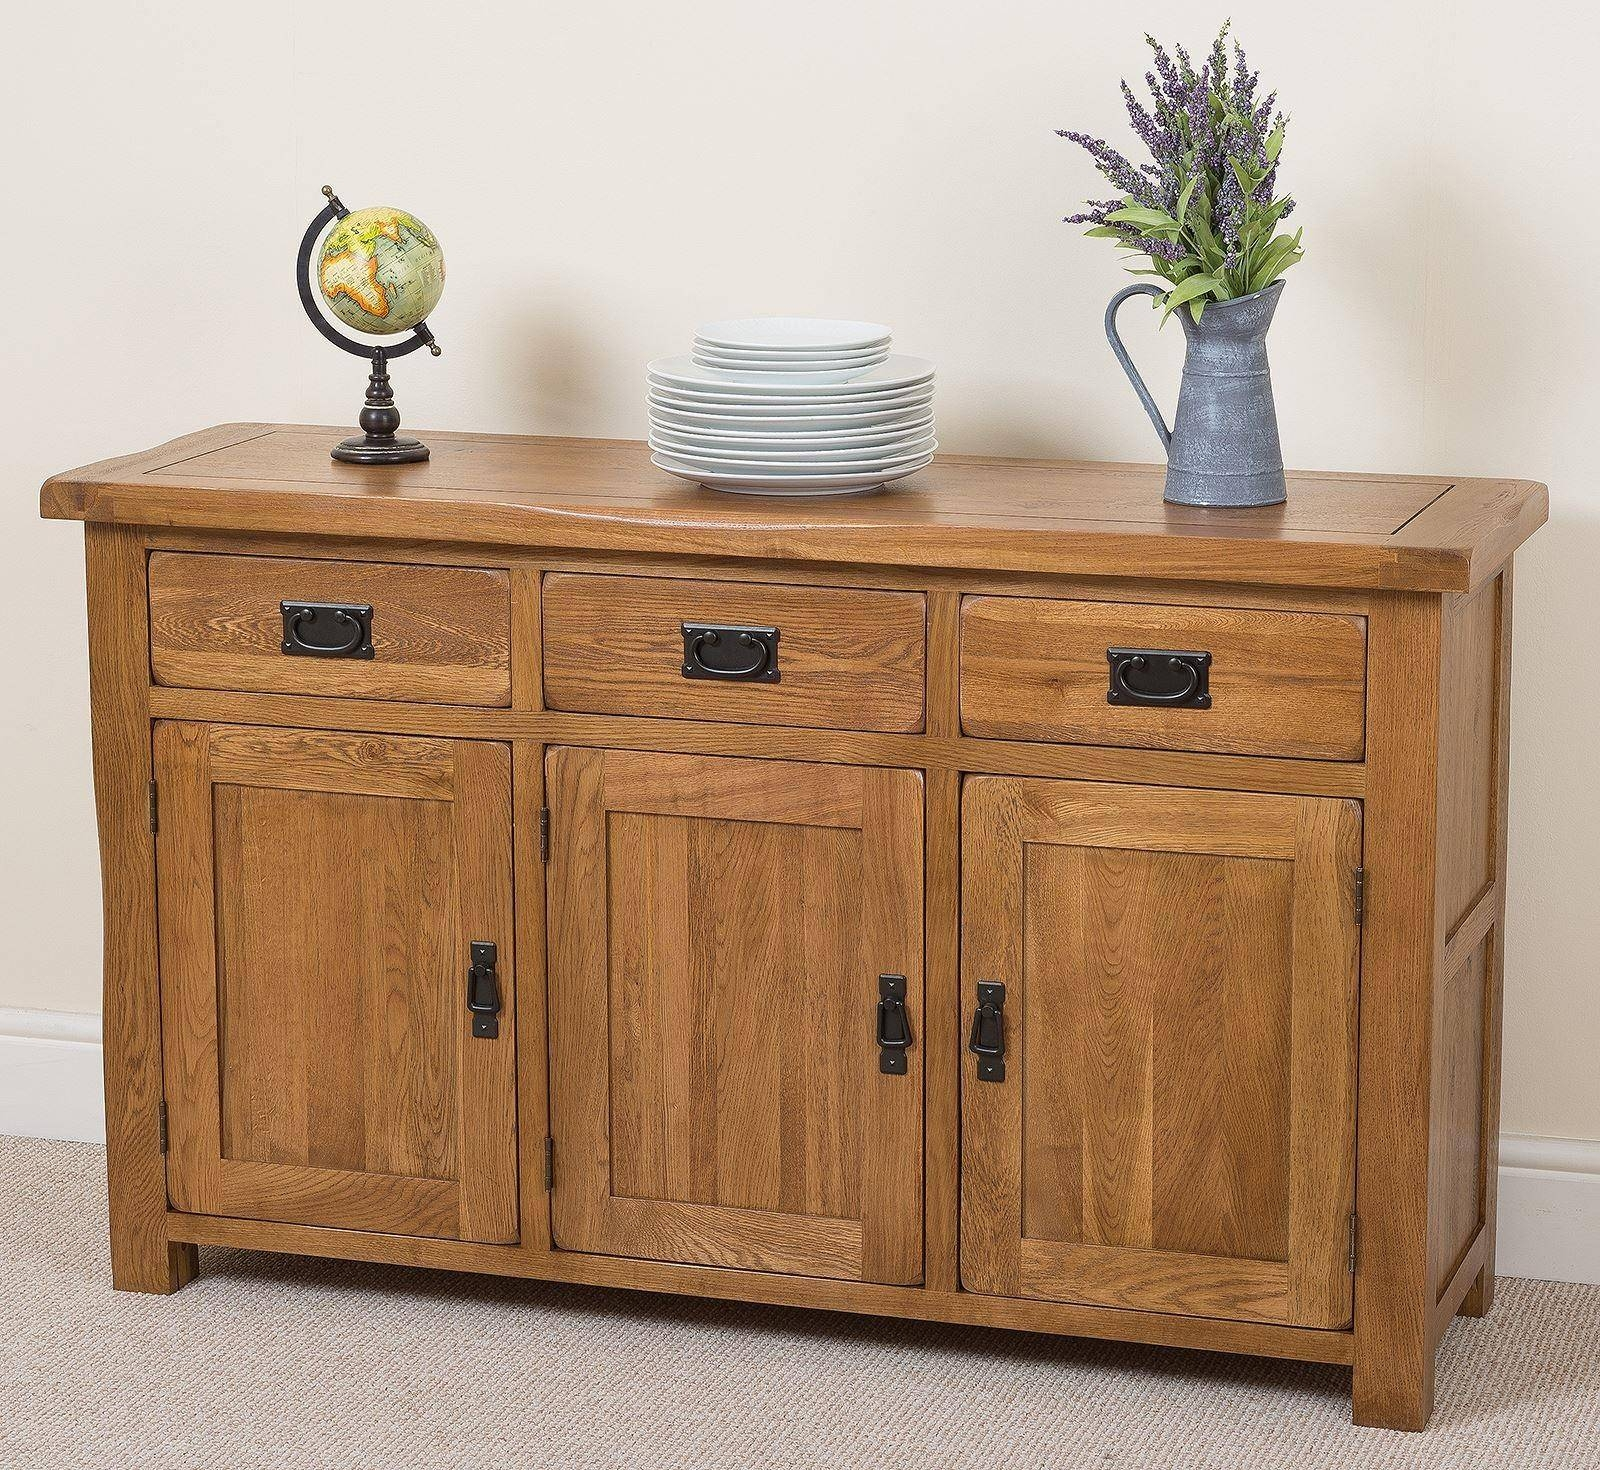 Cotswold Large Oak Sideboard | Free Uk Delivery with Rustic Oak Large Sideboards (Image 5 of 15)